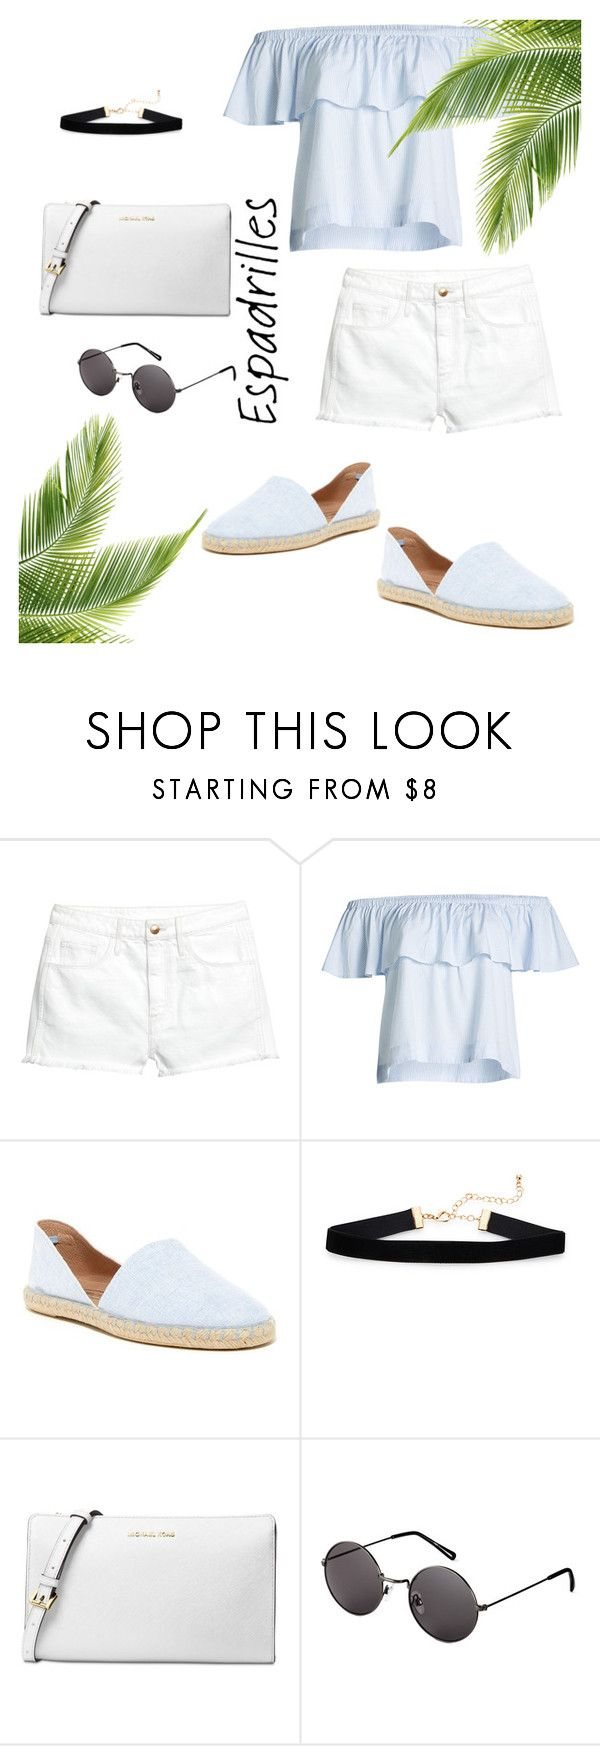 """Untitled #90"" by agbuteraa ❤ liked on Polyvore featuring H&M, Anine Bing, Sheridan Mia, Michael Kors, Summer, tropical and espadrilles"